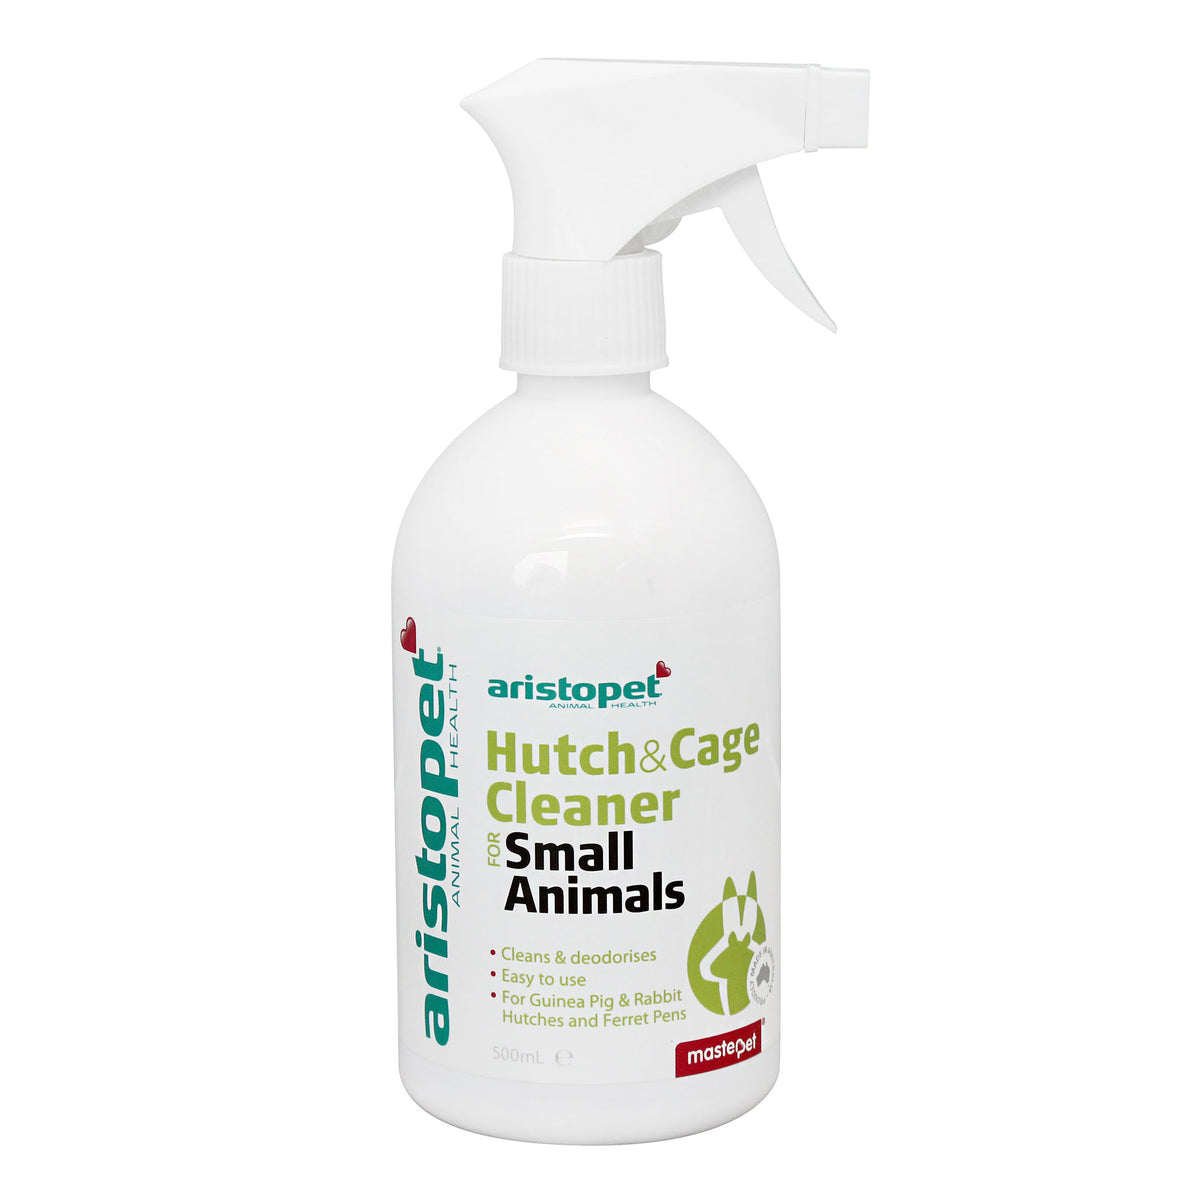 Aristopet Hutch & Cage Cleaner for Small Animals 500mL